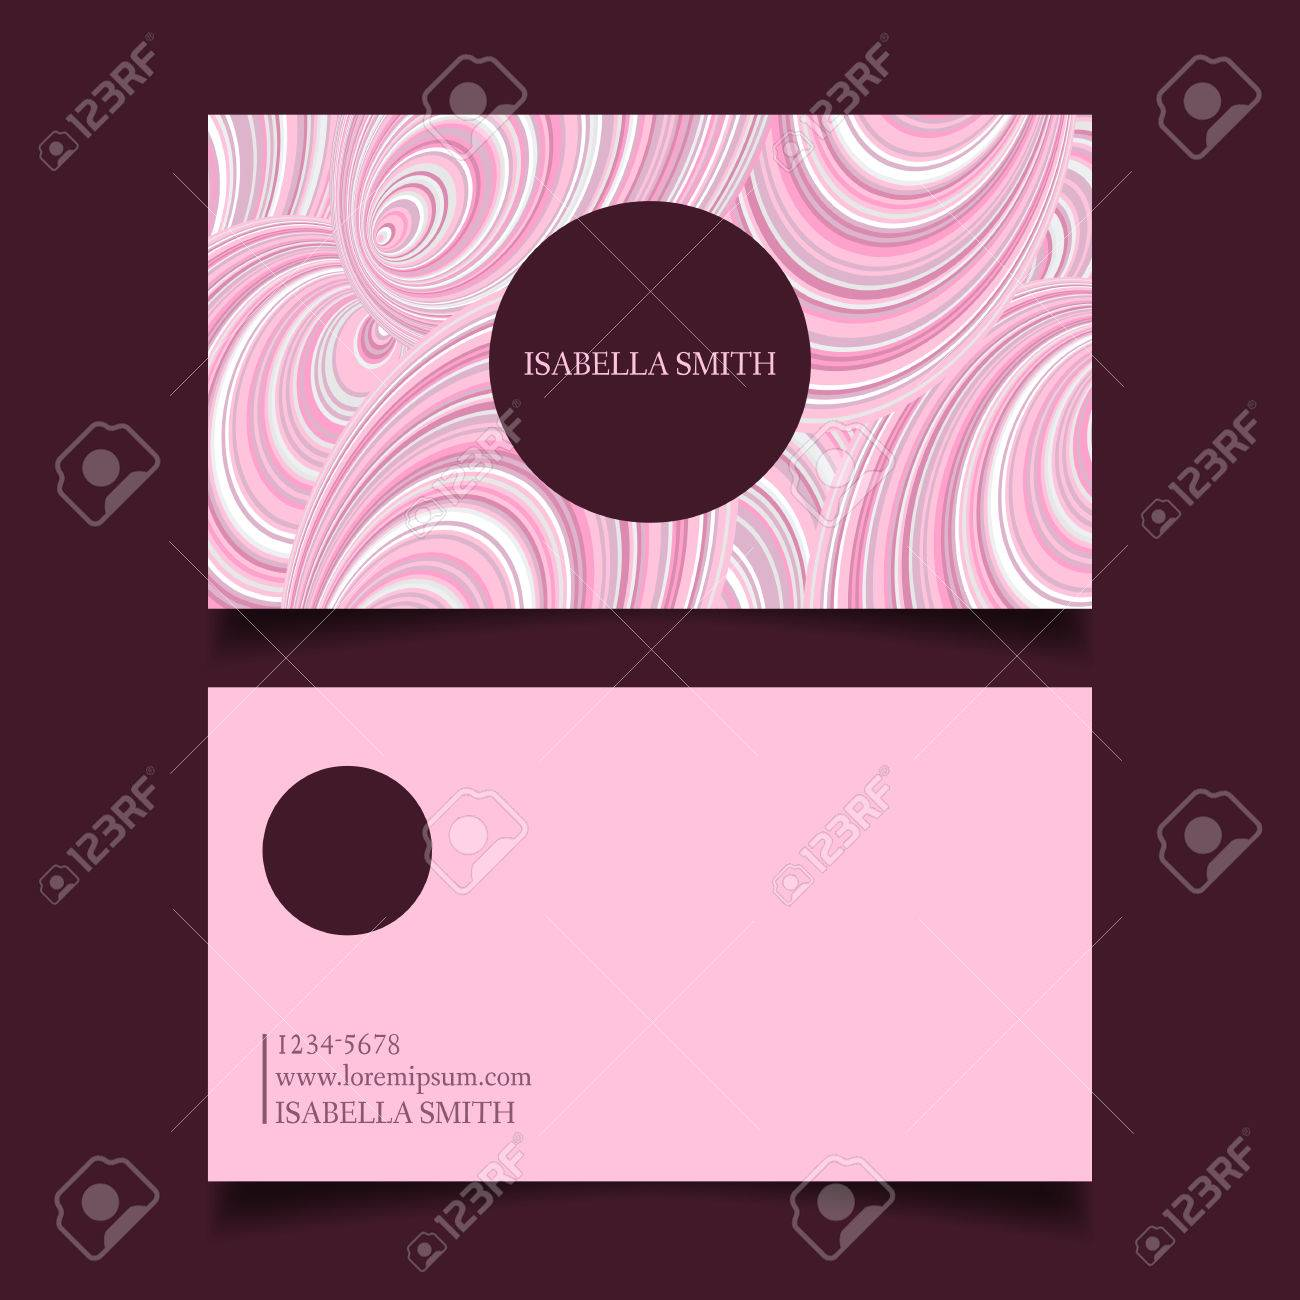 Business card template editable gently pink color palette design business card template editable gently pink color palette design vector stock vector fbccfo Image collections